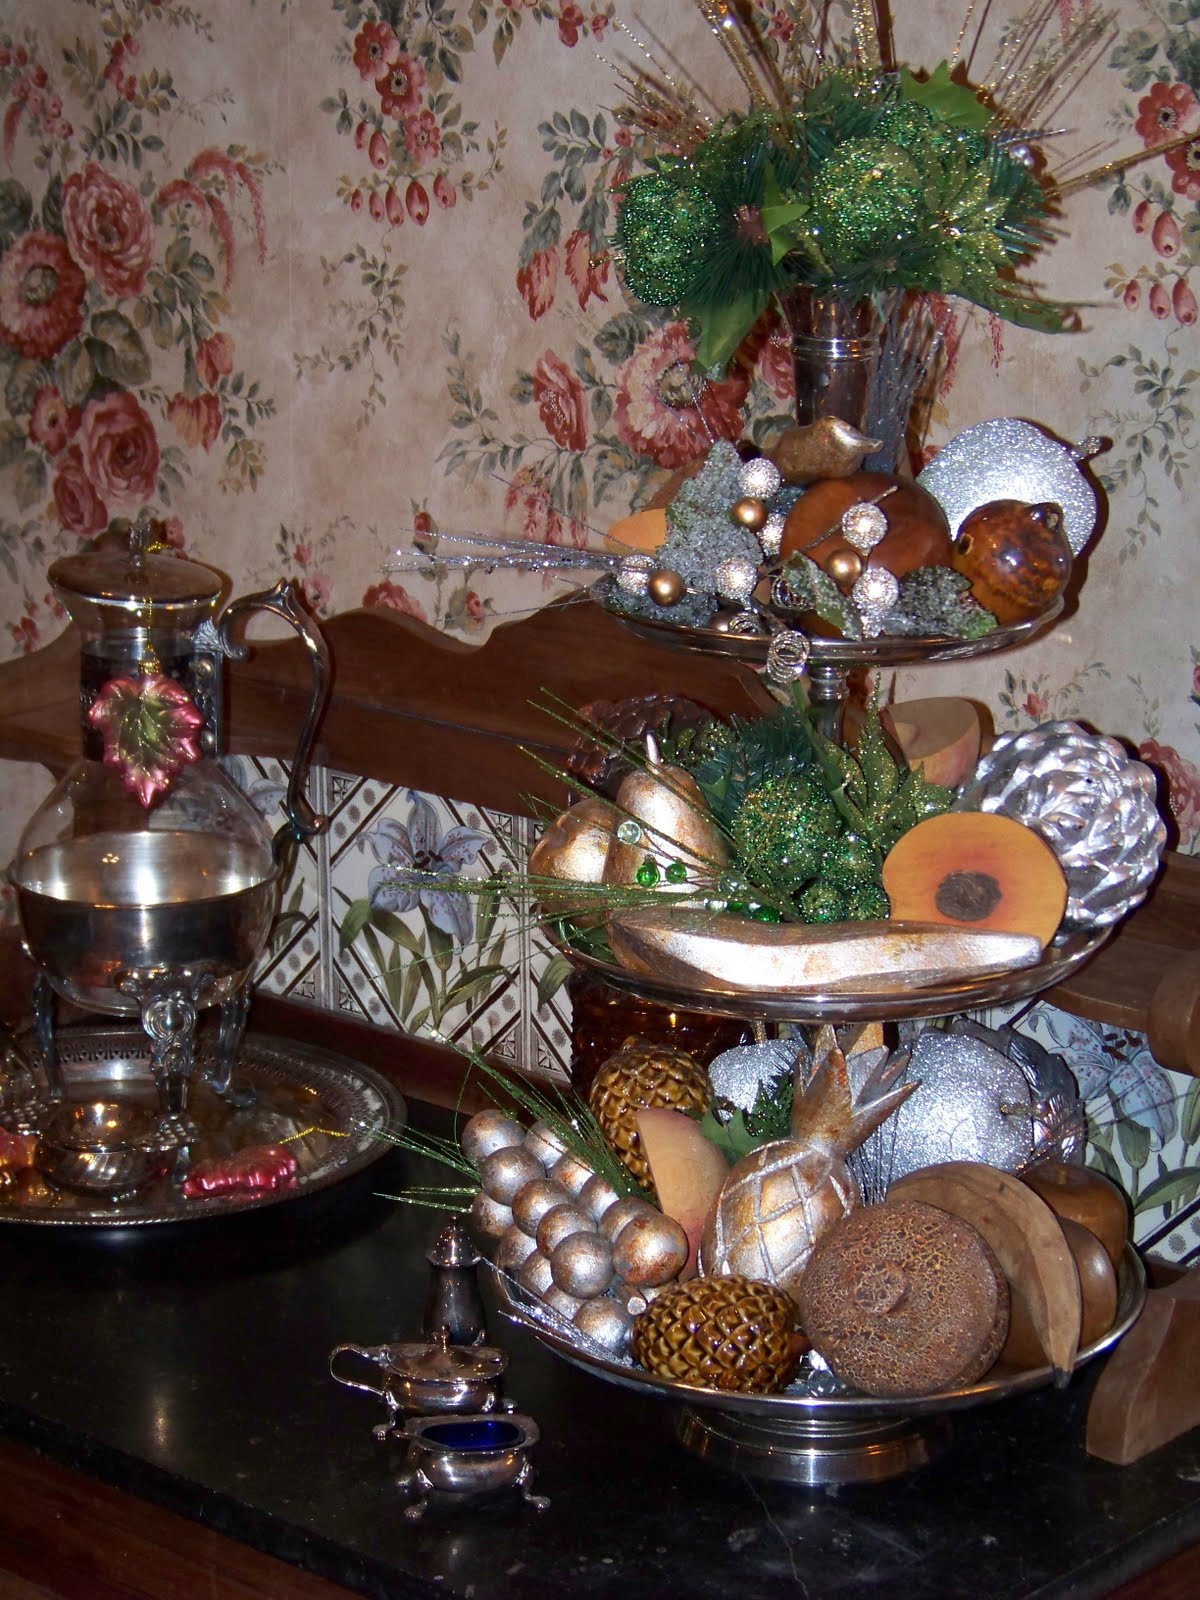 In a couple of days I will put up another post from the Holiday Tables  title=